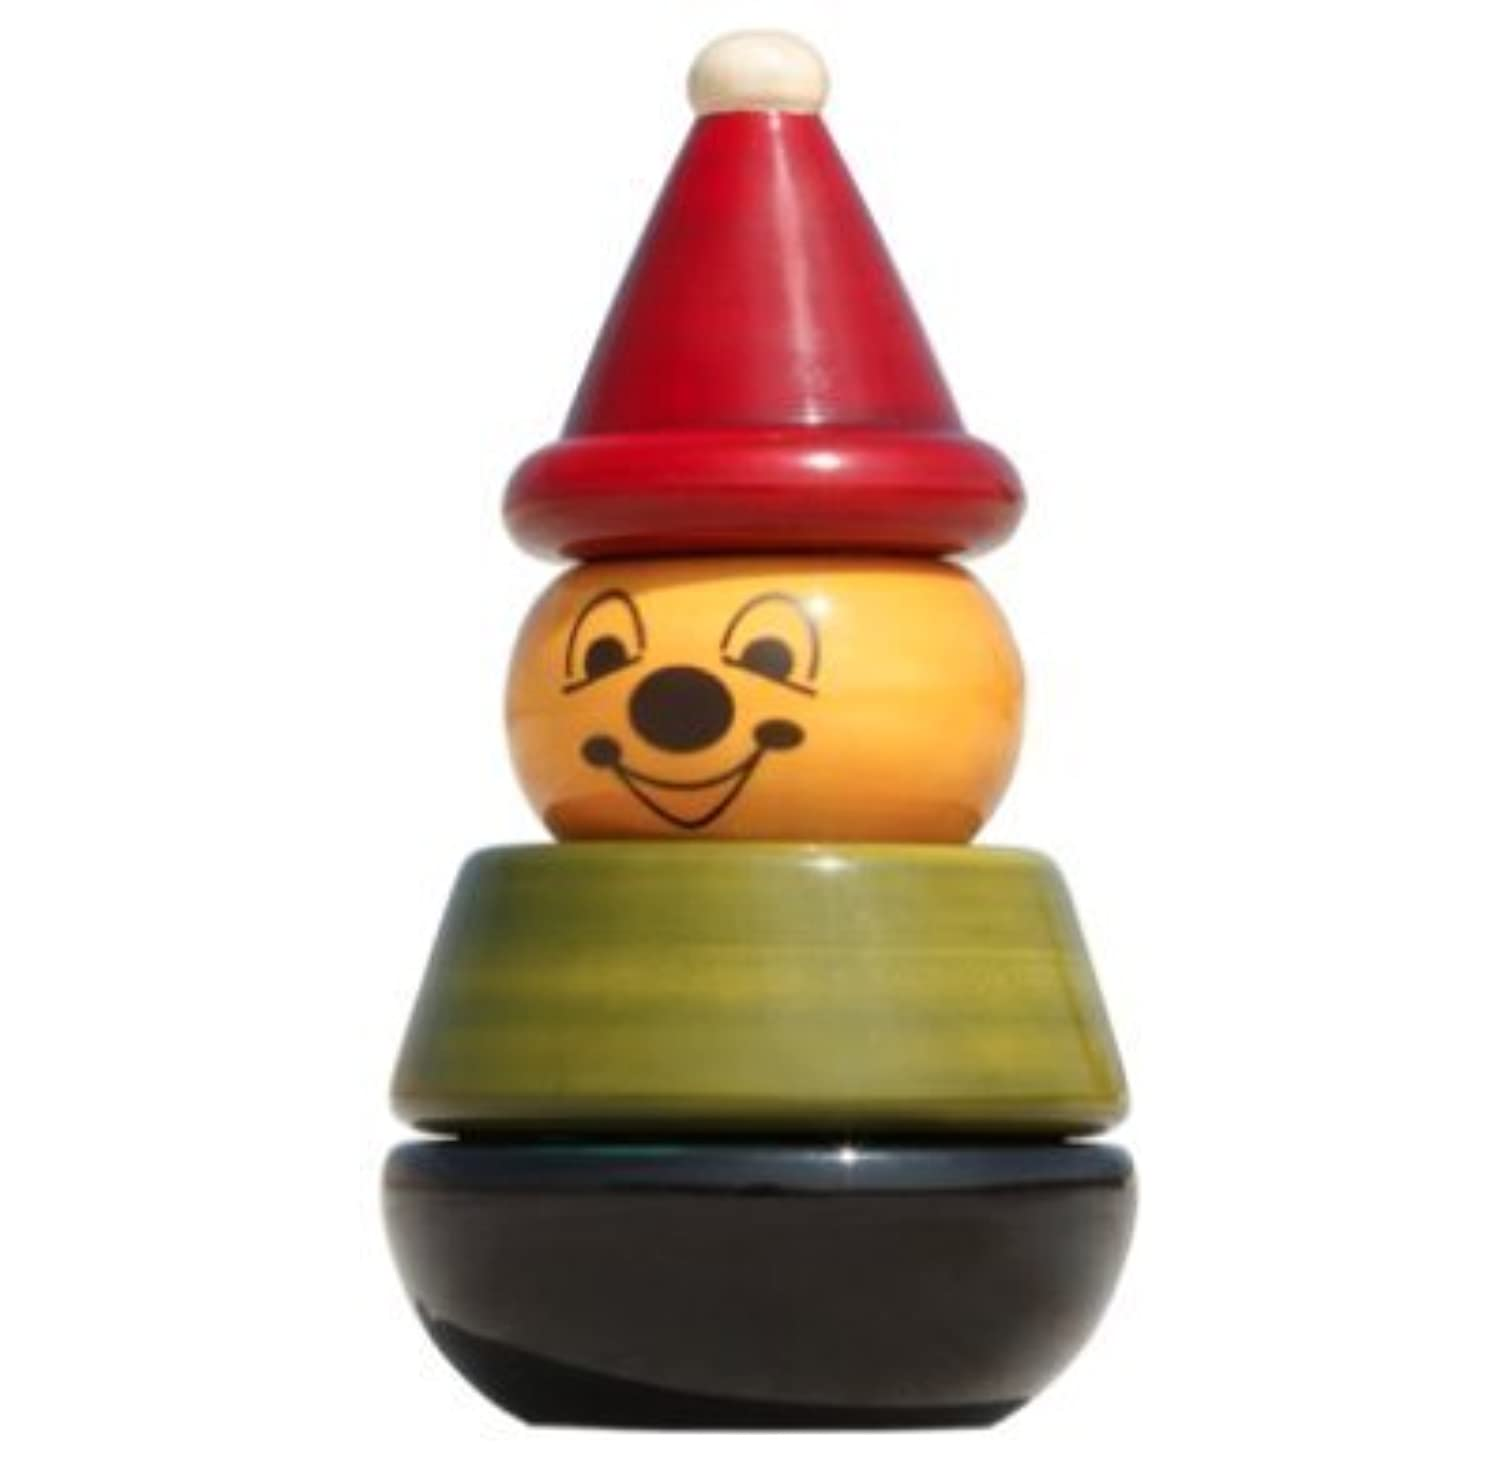 Handmade Wooden Stacking Toy Clownカラーを使用自然Made for Toddlers 12か月Old and up , Helpsで早期教育と開発| Aaba by Maya Organic